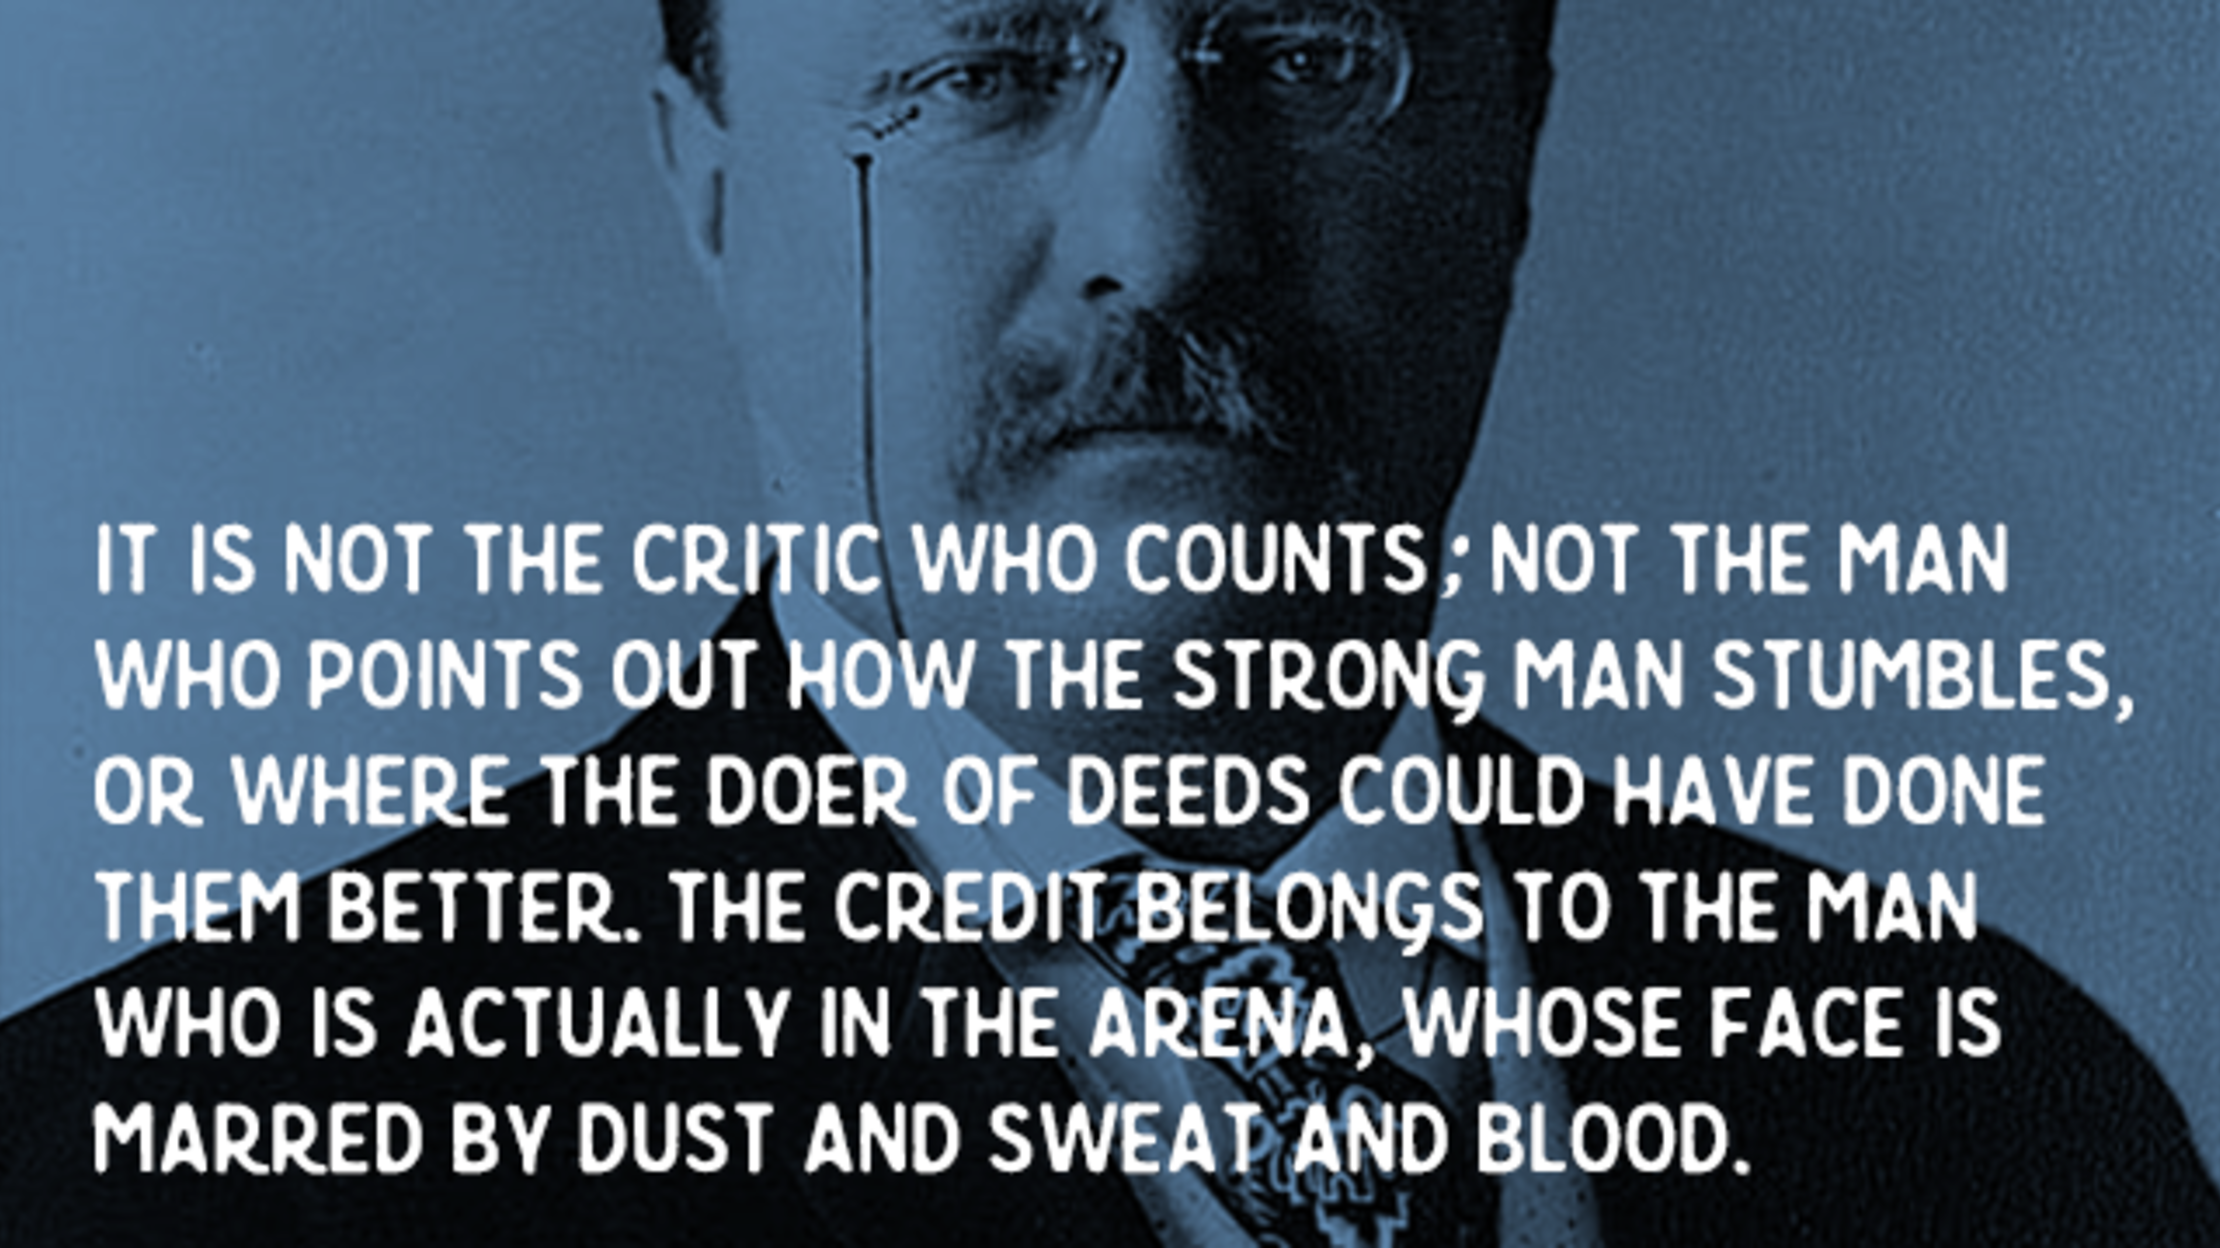 """Png Of Slave Man Standing Next To Today S Man - Roosevelt's """"The Man in the Arena"""" 